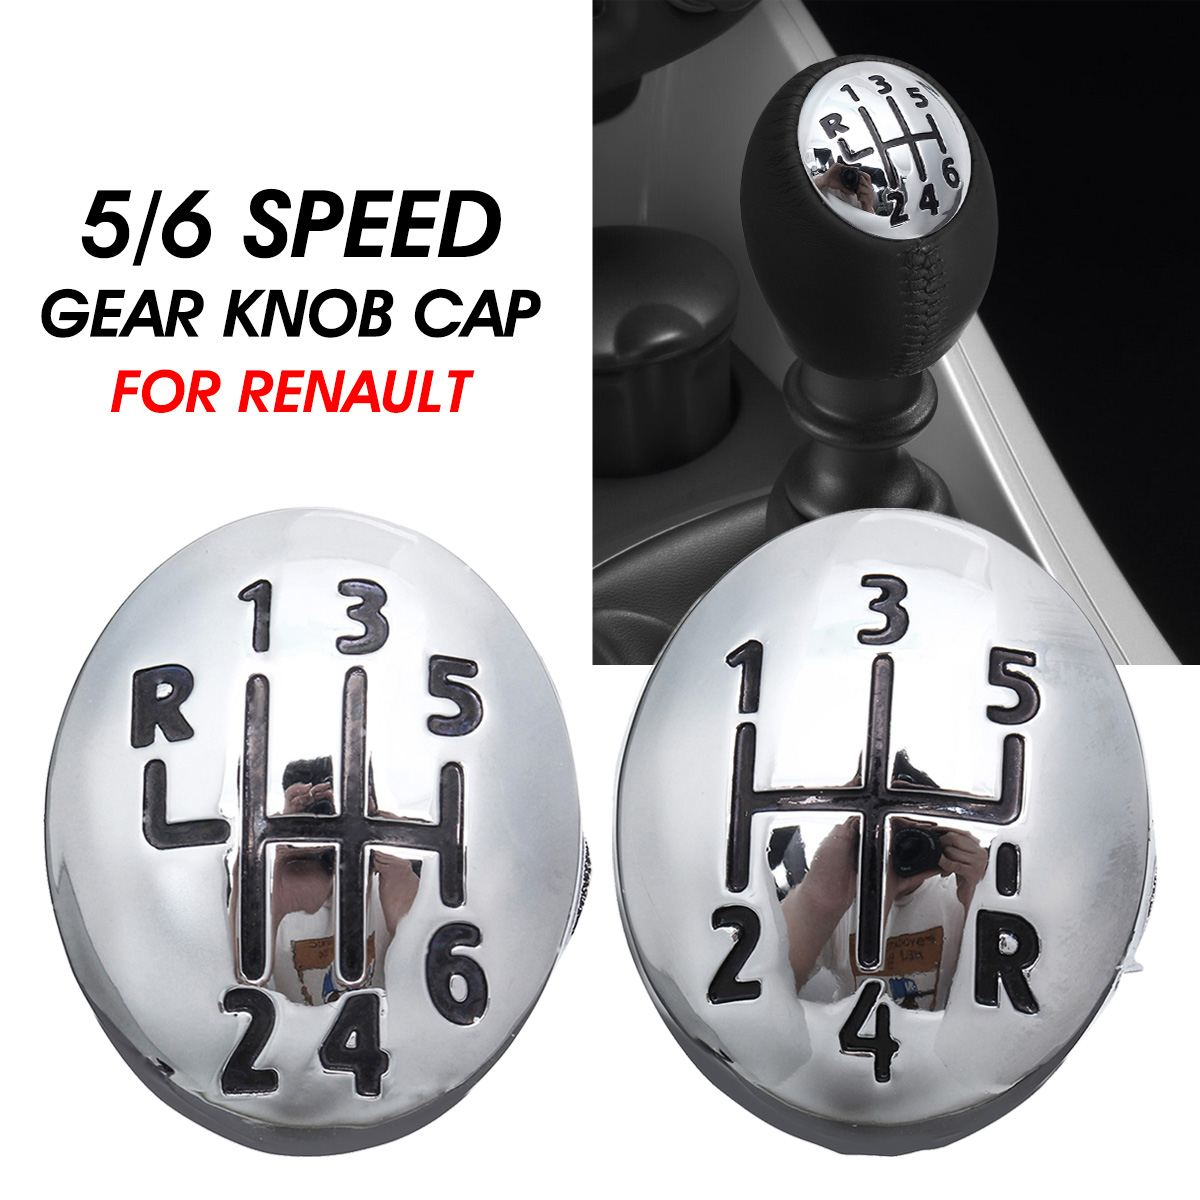 5/6 Speed Car Gear Knob Cap Cover Shift Lever Head Cover For Renault Clio Twingo Scenic Megane II 1996-2011